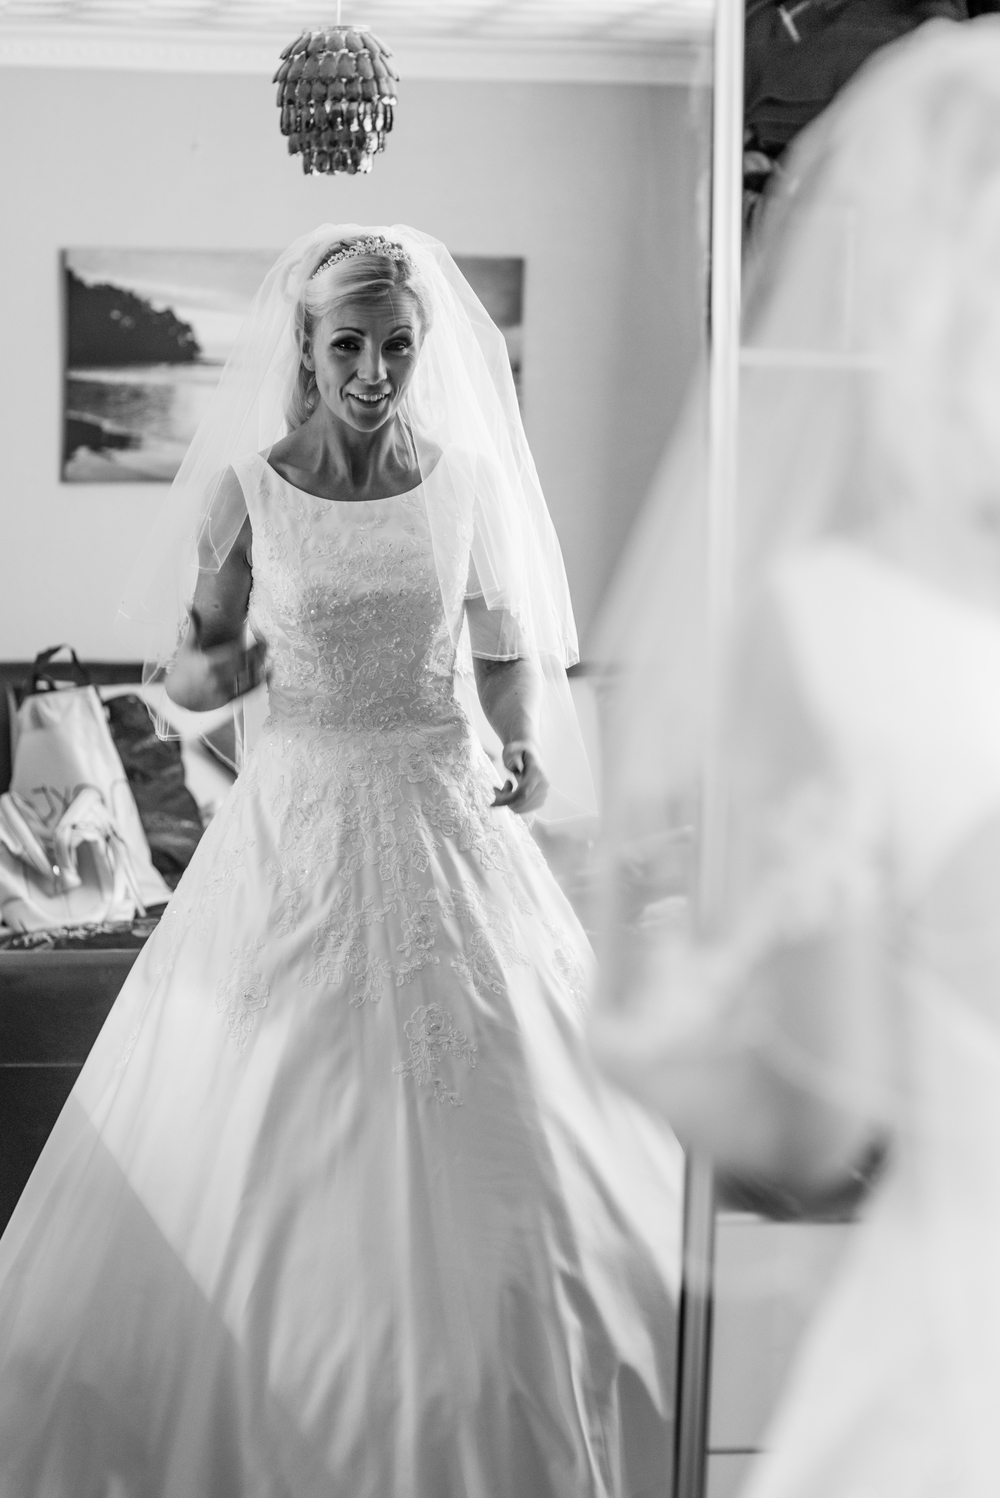 Northern_Ireland_Wedding_Photographer_Bride_Wedding_Dress